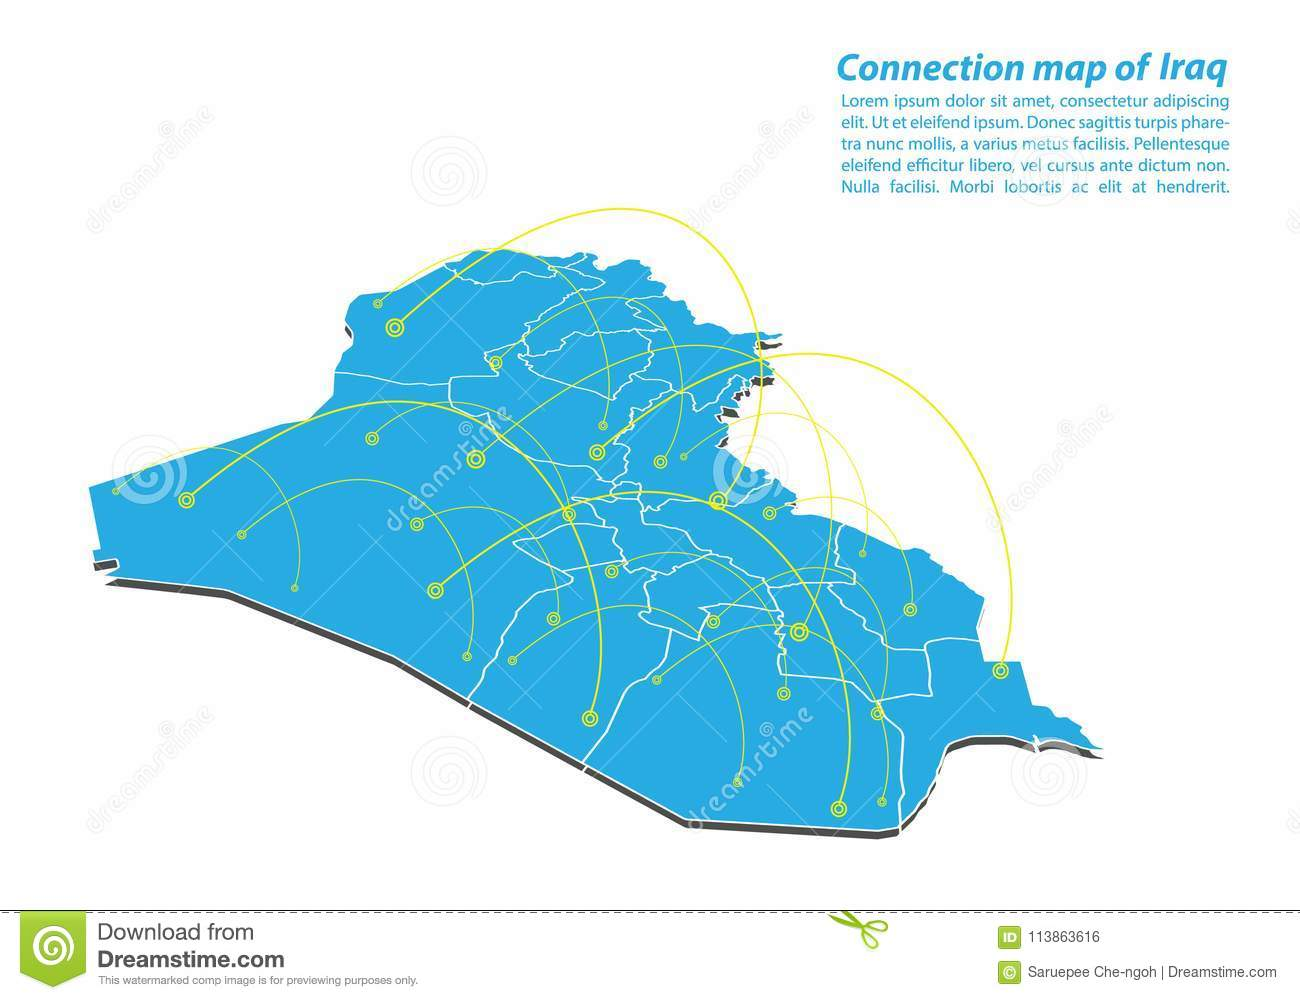 Modern Of Iraq Map Connections Network Design, Best Internet